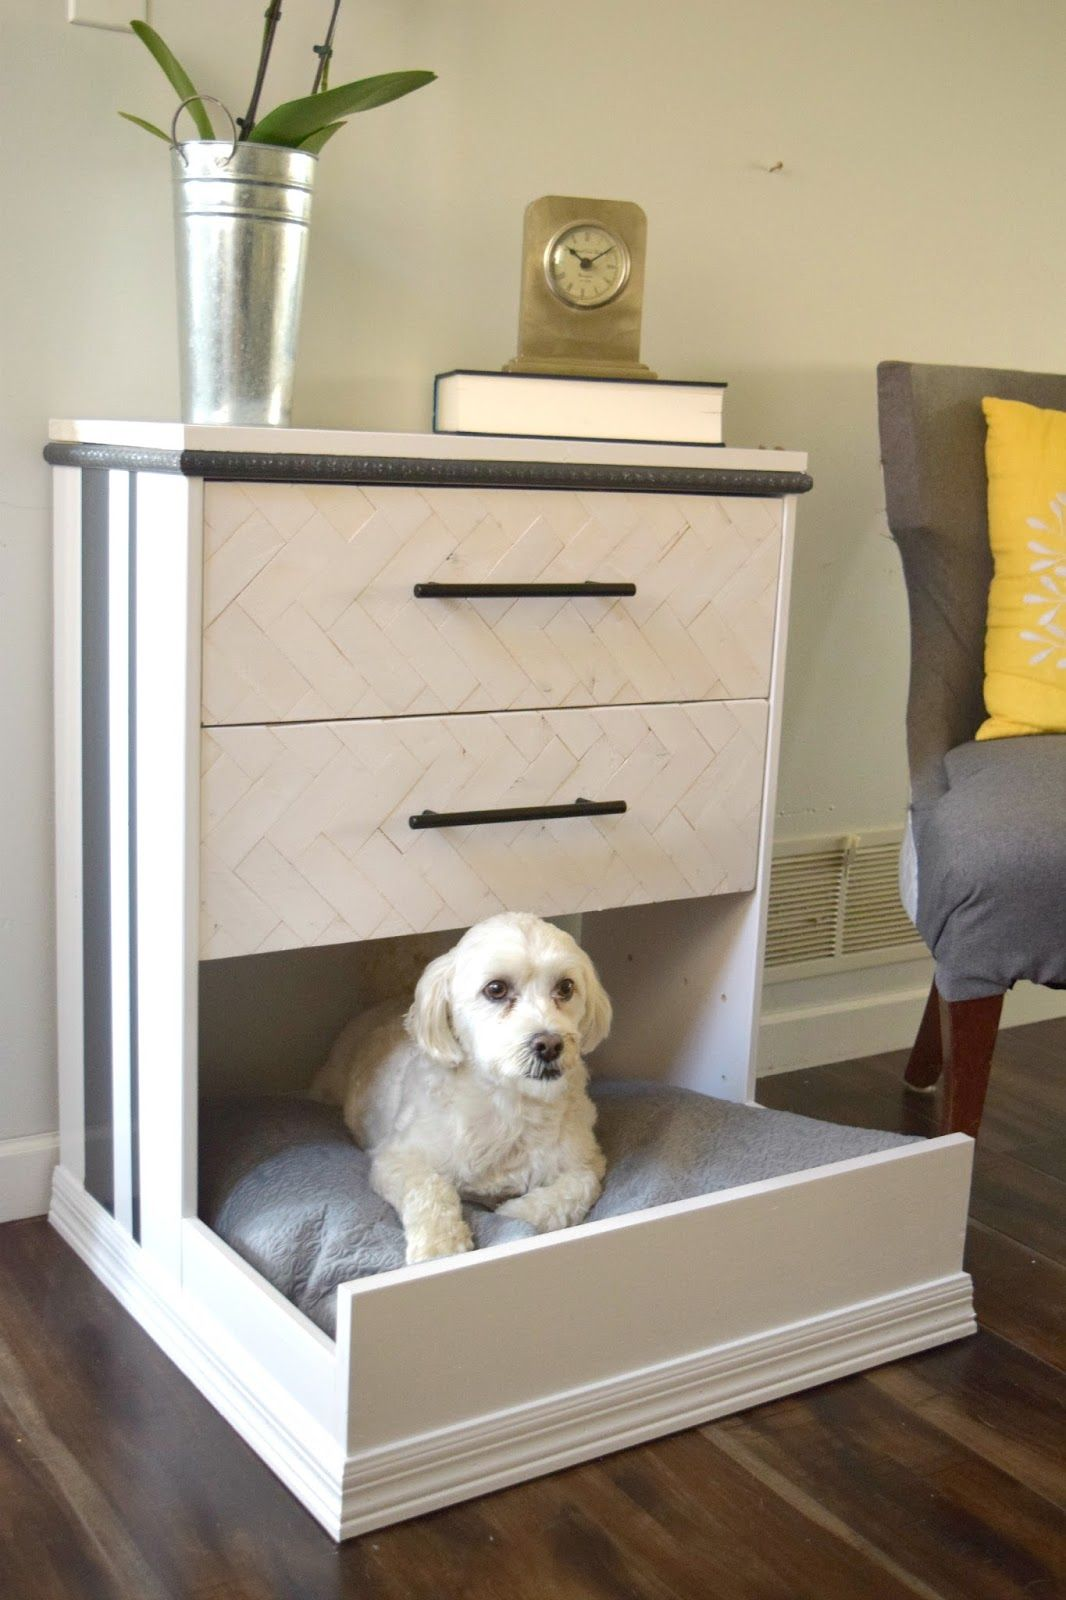 Charmant One Of The Best Ikea Furniture Hacks! A Rast Dresser Turned Into A Dog Bed,  With Storage! Love The Herringbone Details And The Modern Combination Of  Black ...